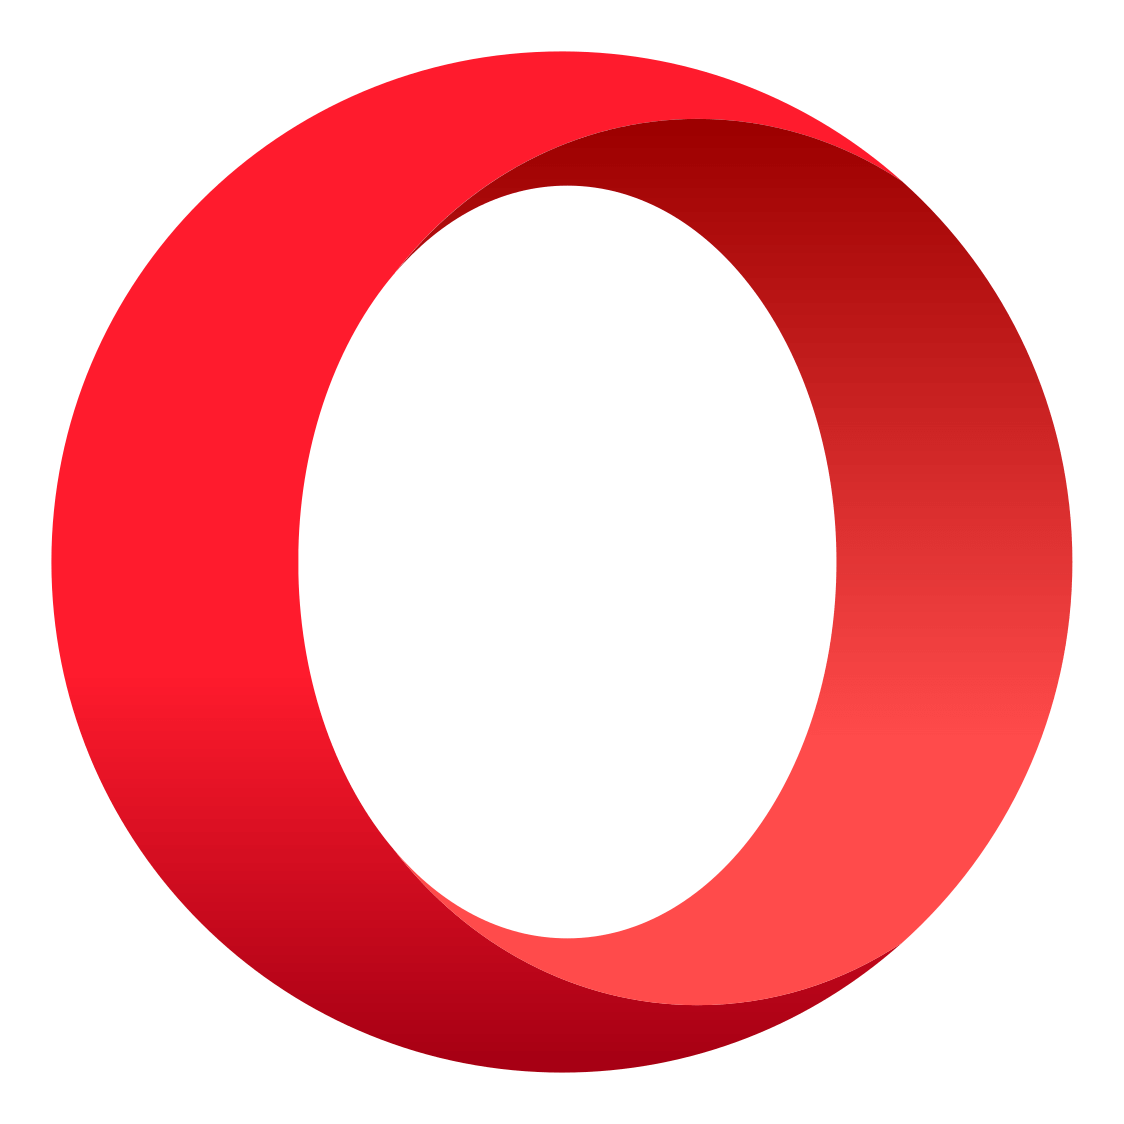 Opera with free VPN for Android 53 0 2569 Download - TechSpot